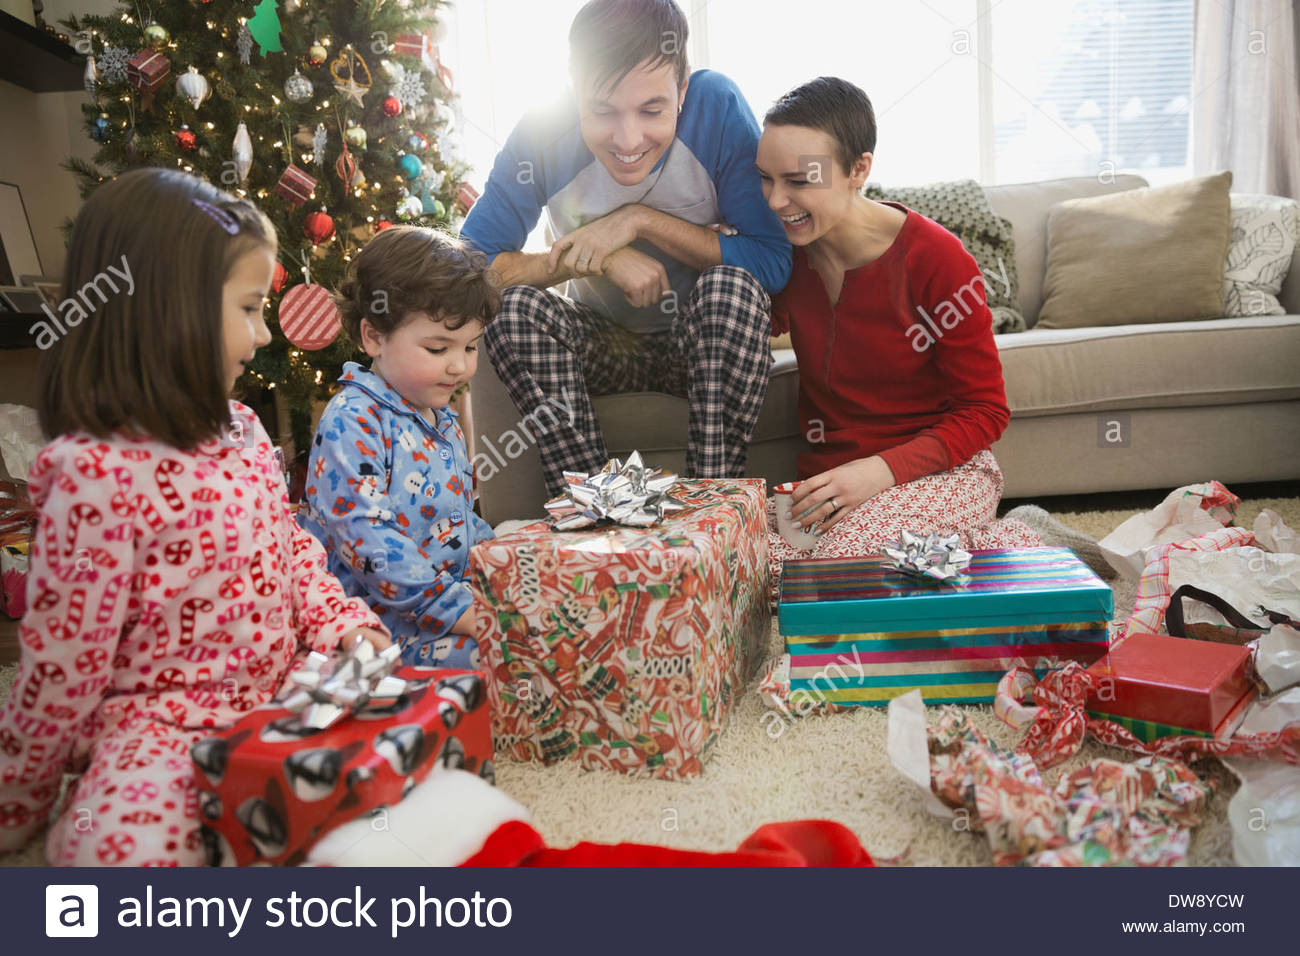 Family sitting with Christmas gifts in living room - Stock Image